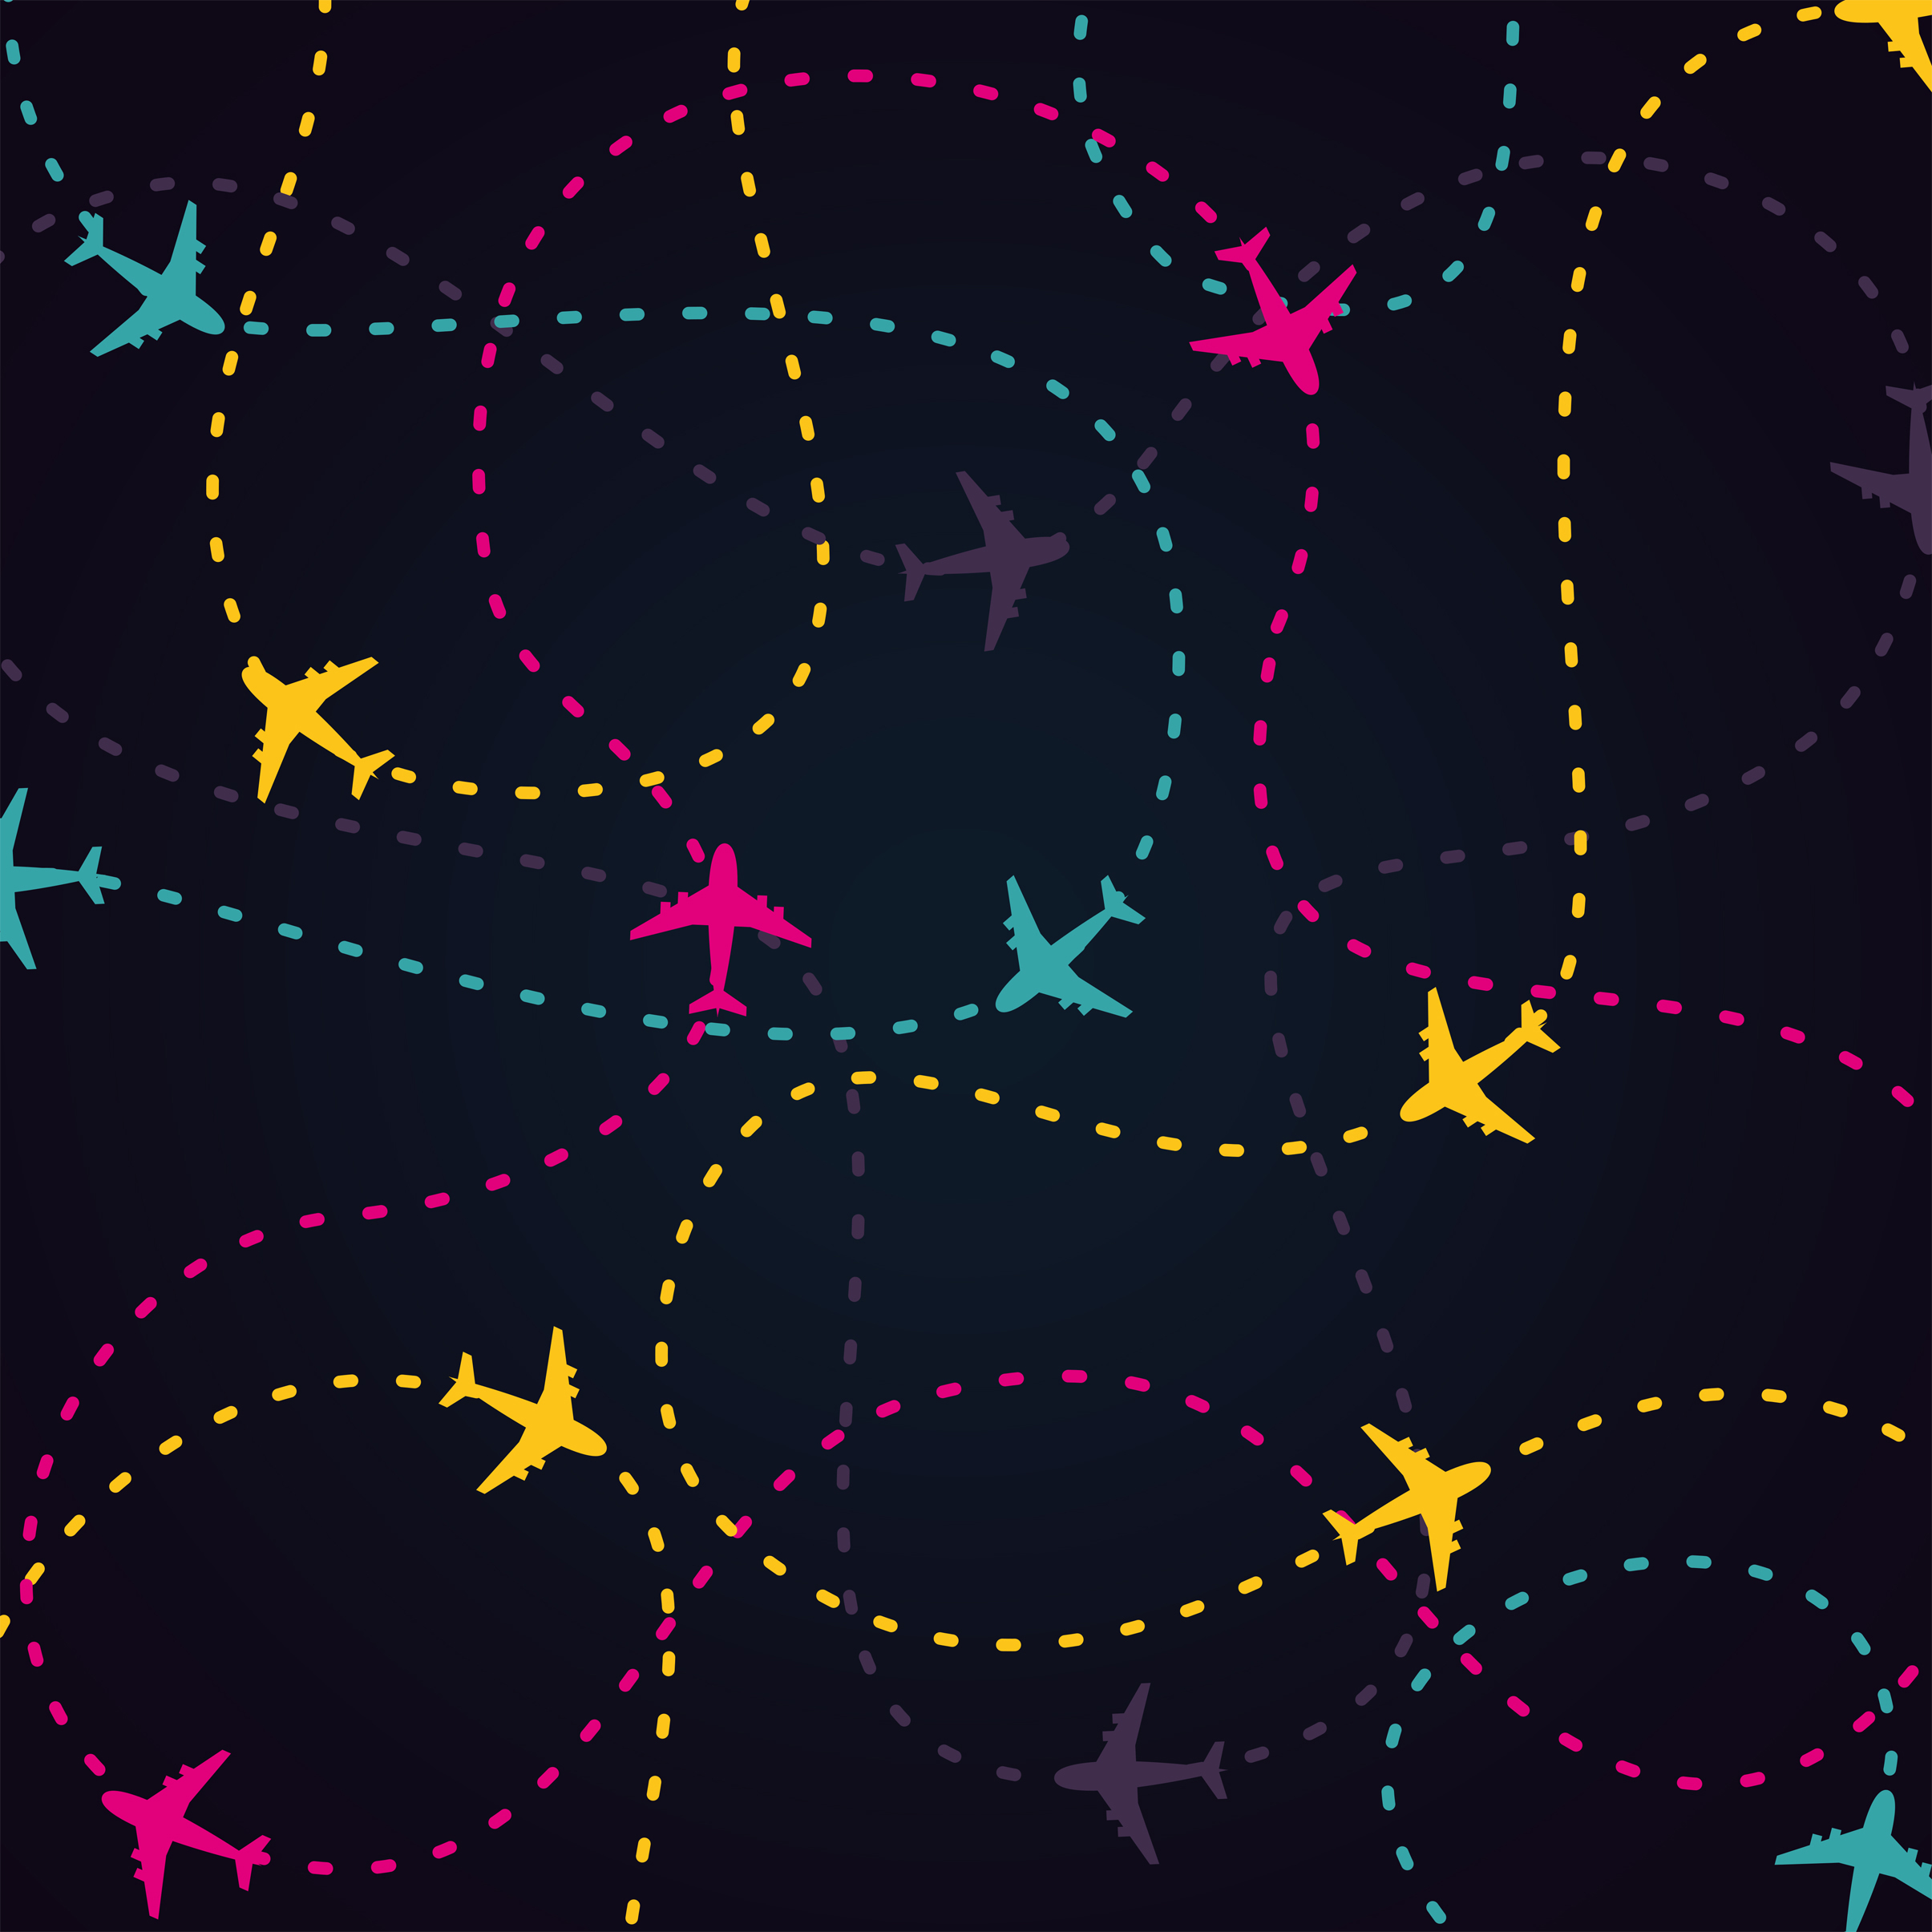 Air Travel - Little Planes and Their Routes, Red, Power, Plans, Planes, HQ Photo